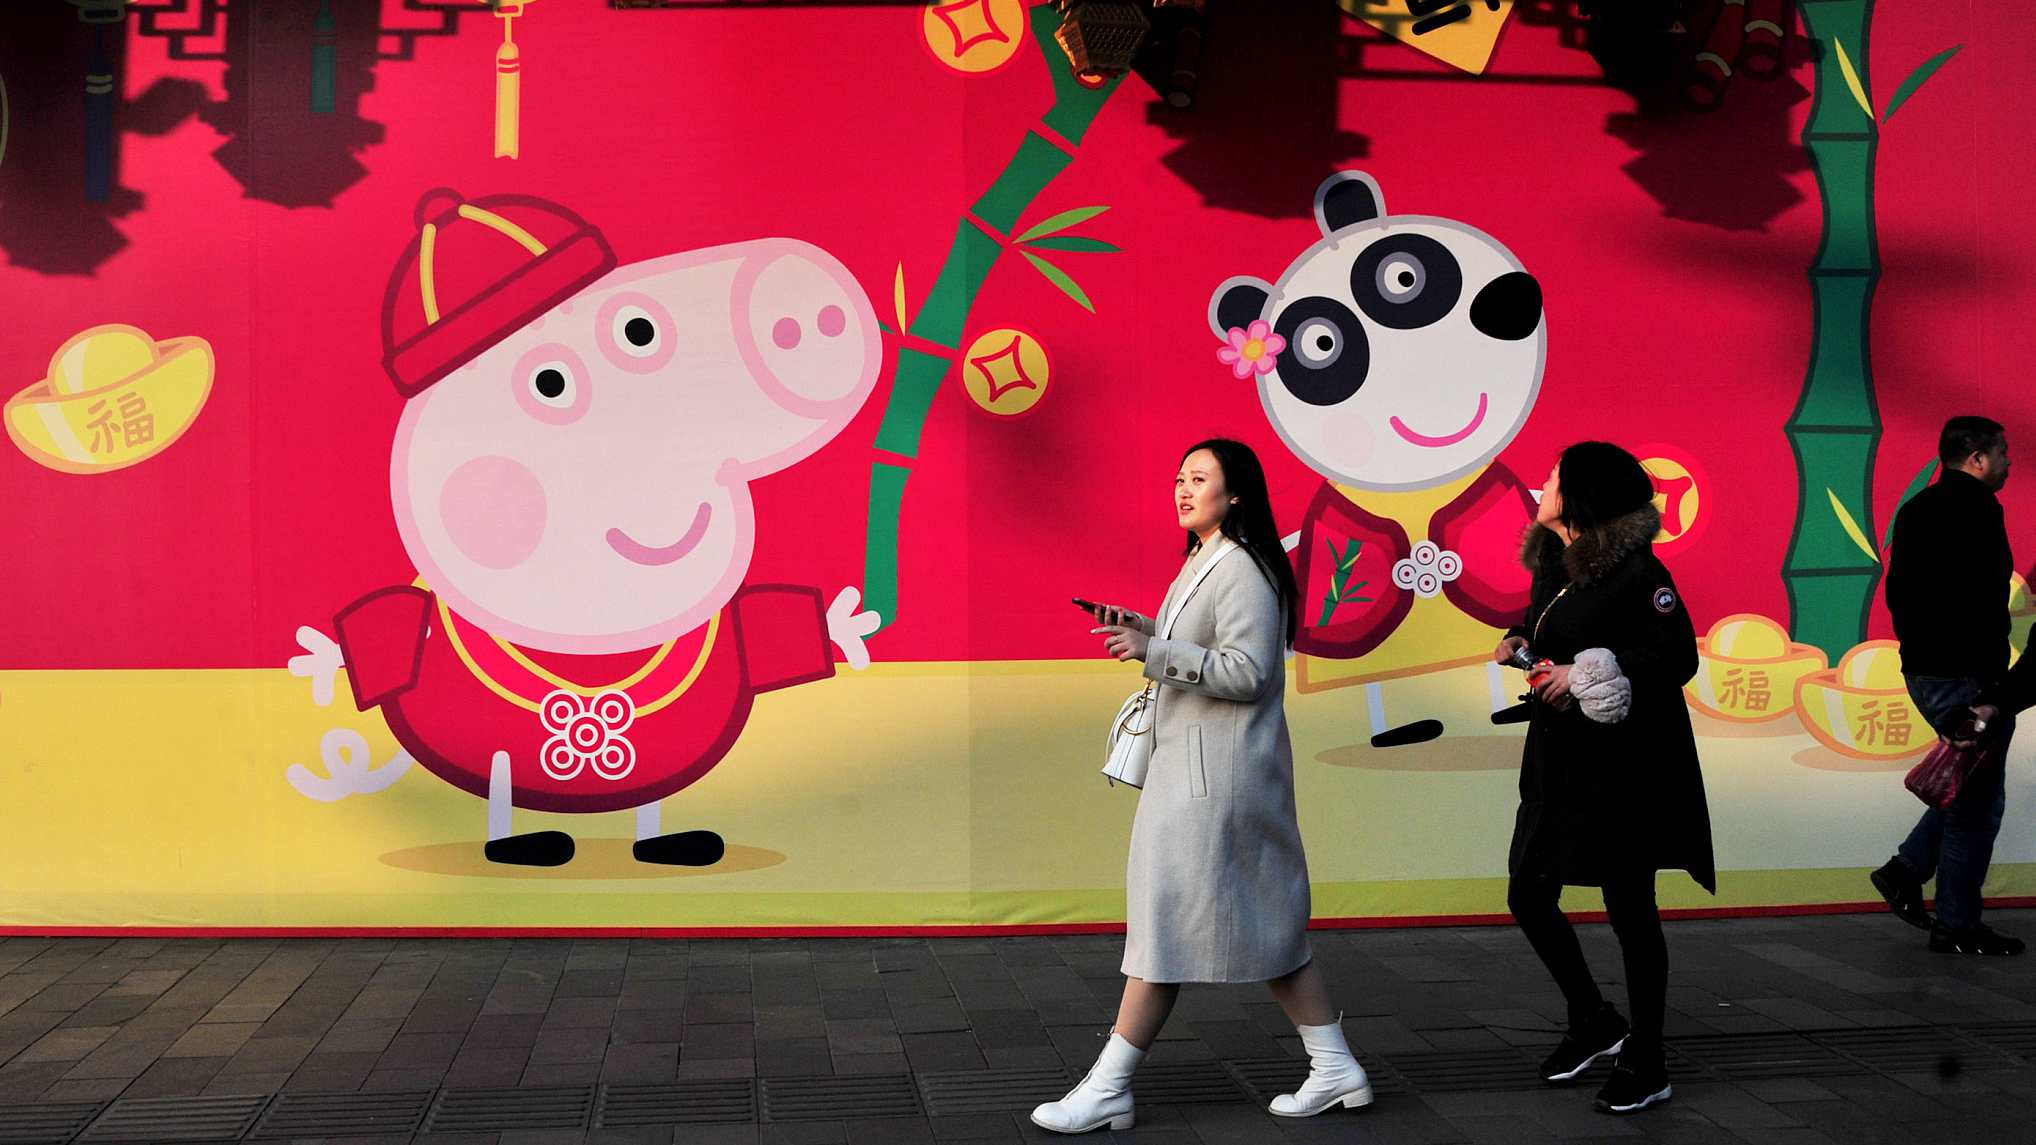 Peppa Pig Film Set To Debut On Day 1 Of Year Of Pig Cgtn